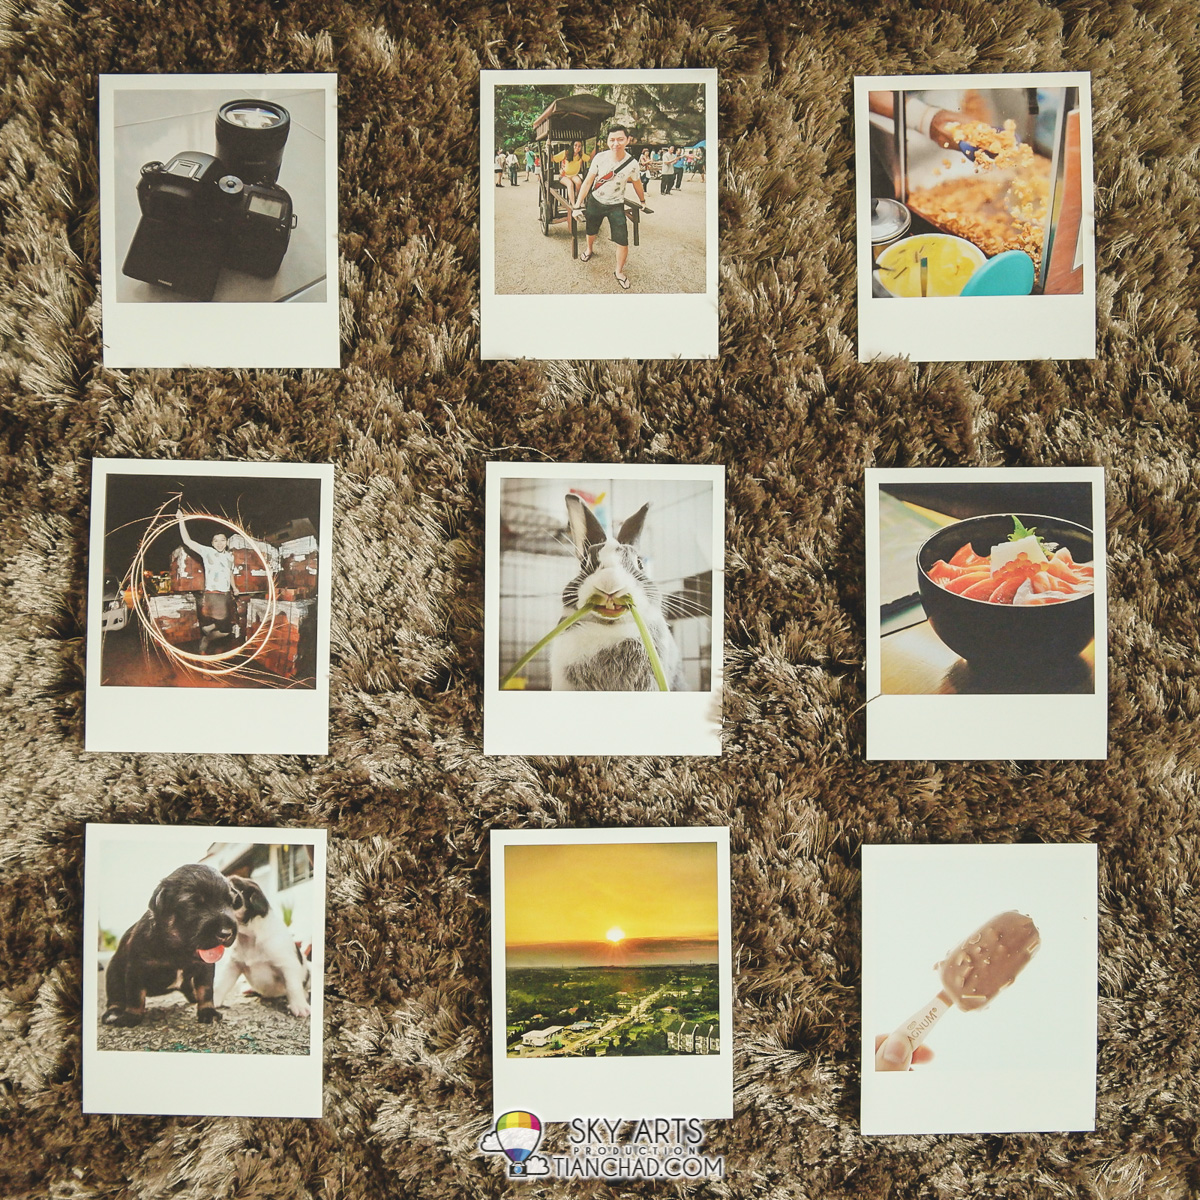 Wanna have your favourite Instagram photos printed out monthly??